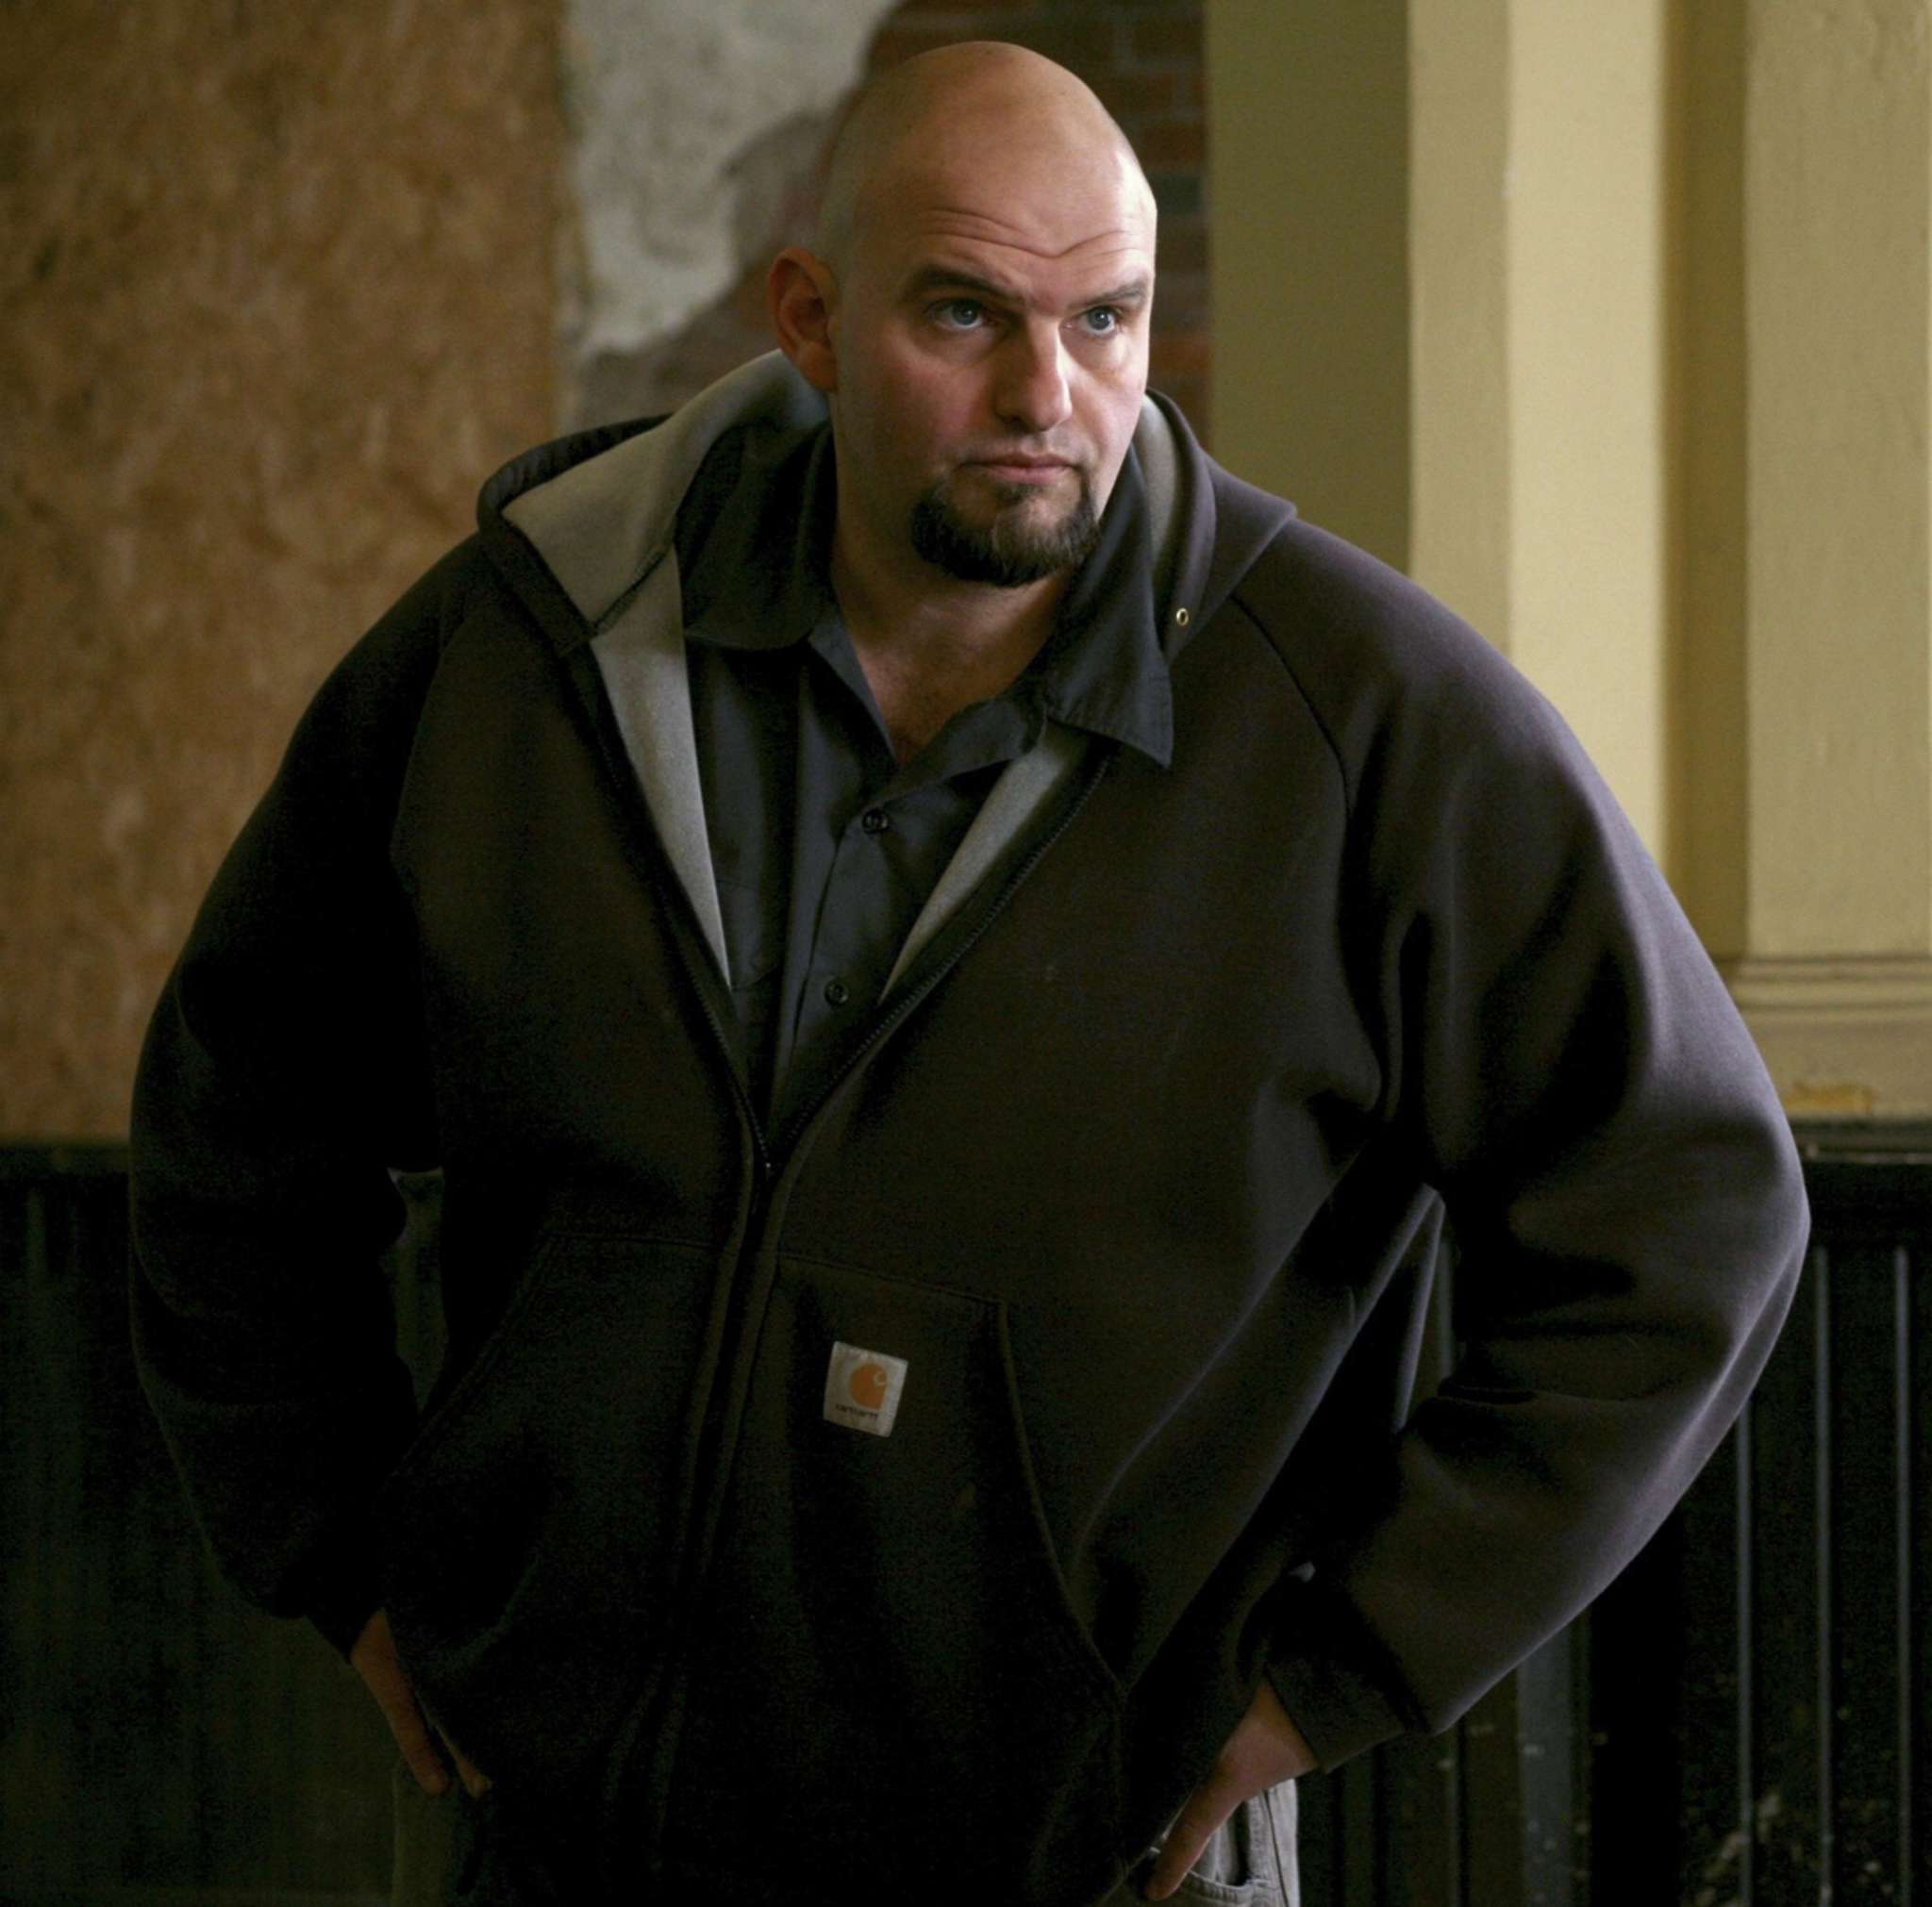 ASSOCIATED PRESS John Fetterman can handle the hurl. He got rave reviews from a guy who says he barfed all over the U.S. Senate candidate´s shoes.